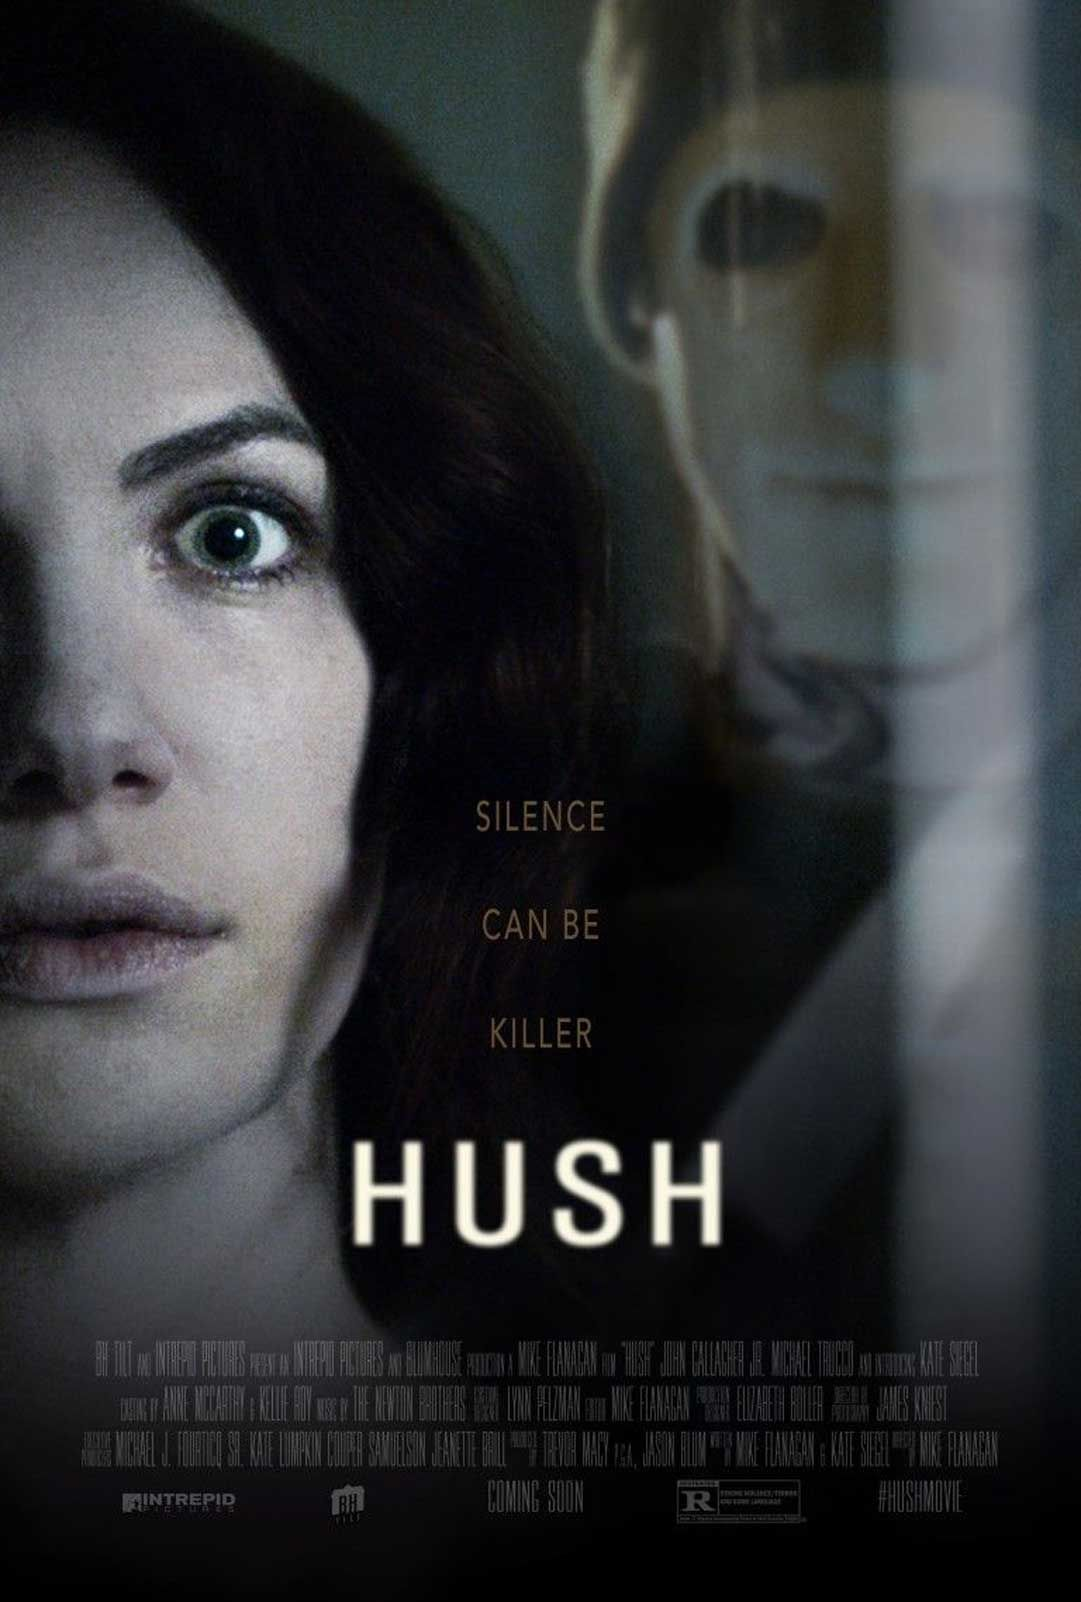 hush 2016 movie review acting the edge and thrillers hush 2016 movie review